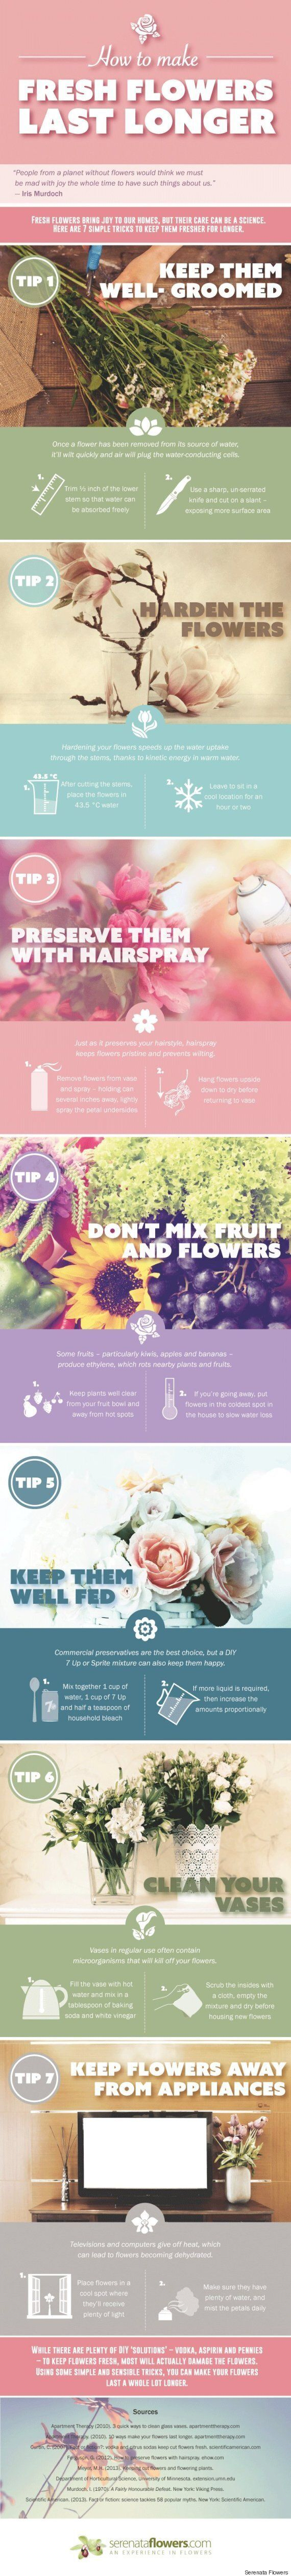 7 Tips To Make Fresh Flowers Last